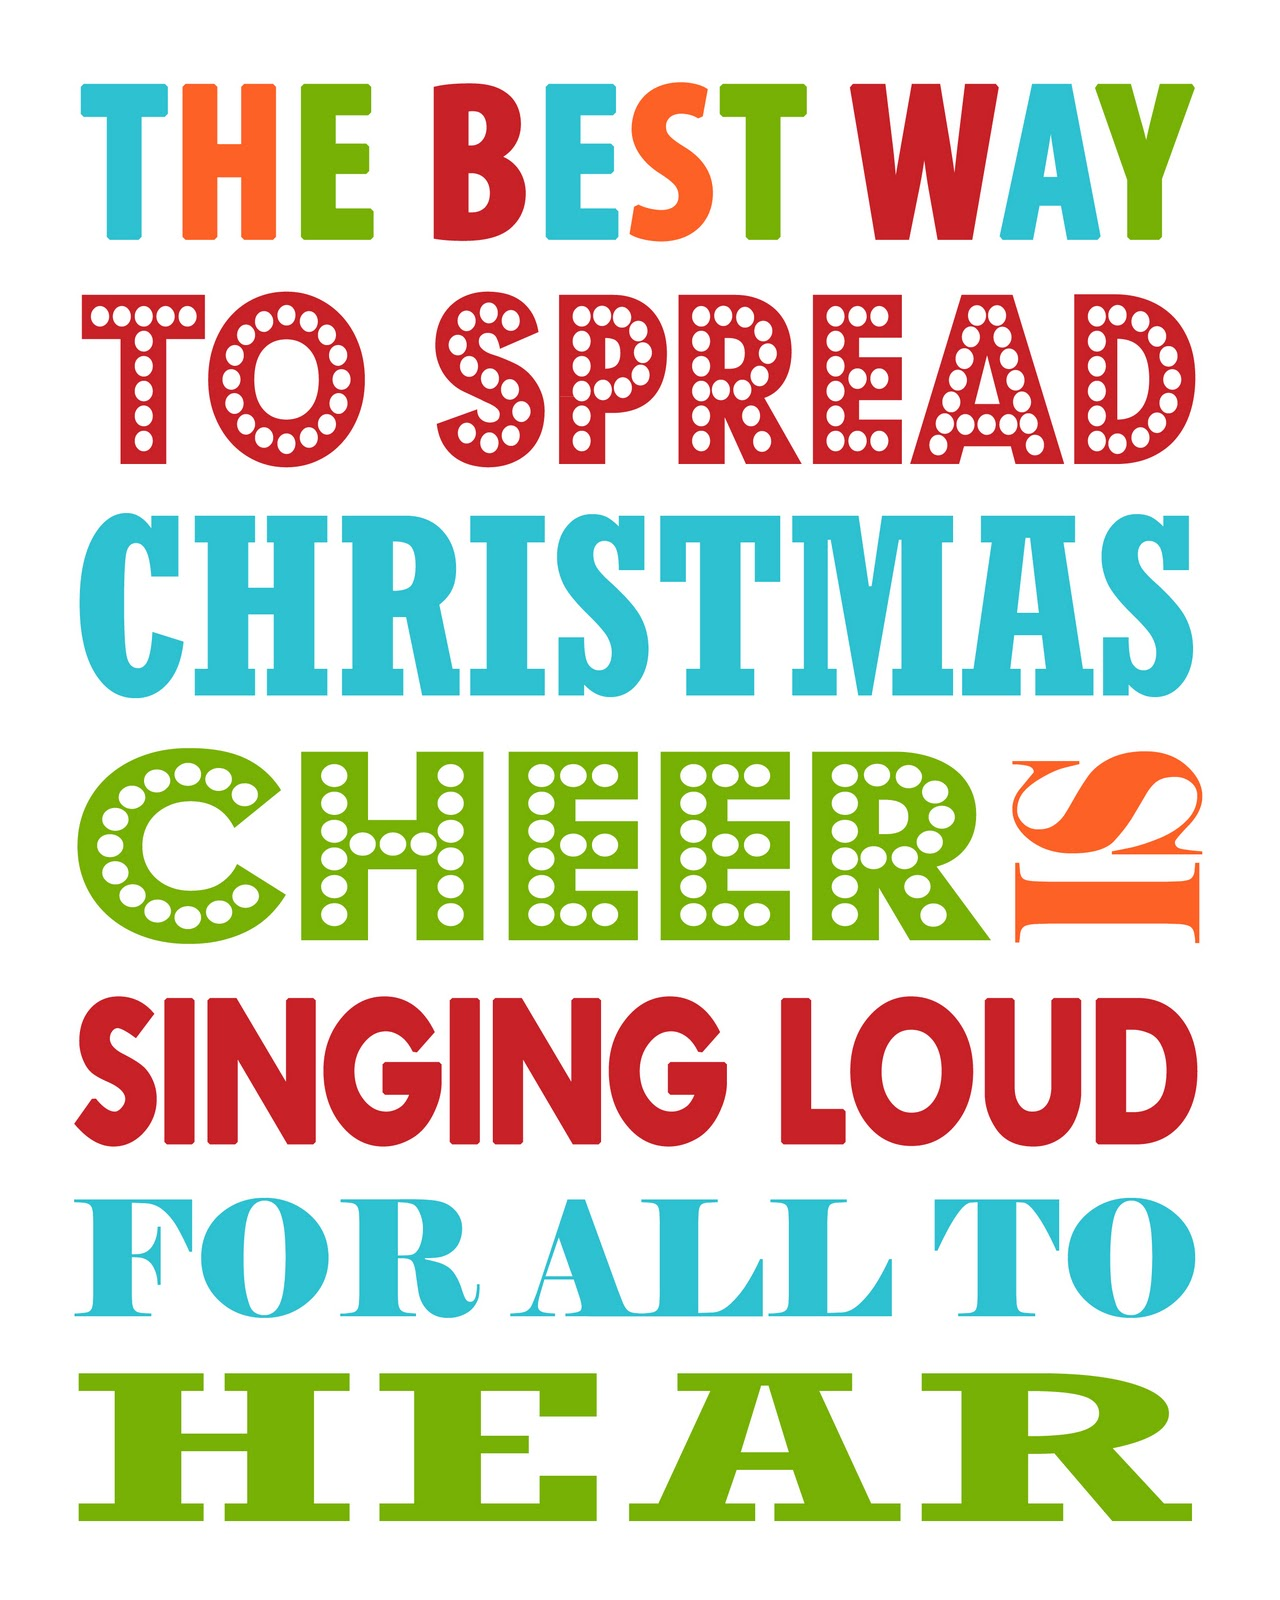 Best Way To Spread Christmas Cheer >> Free Christmas Printable The Best Way To Spread Christmas Cheer